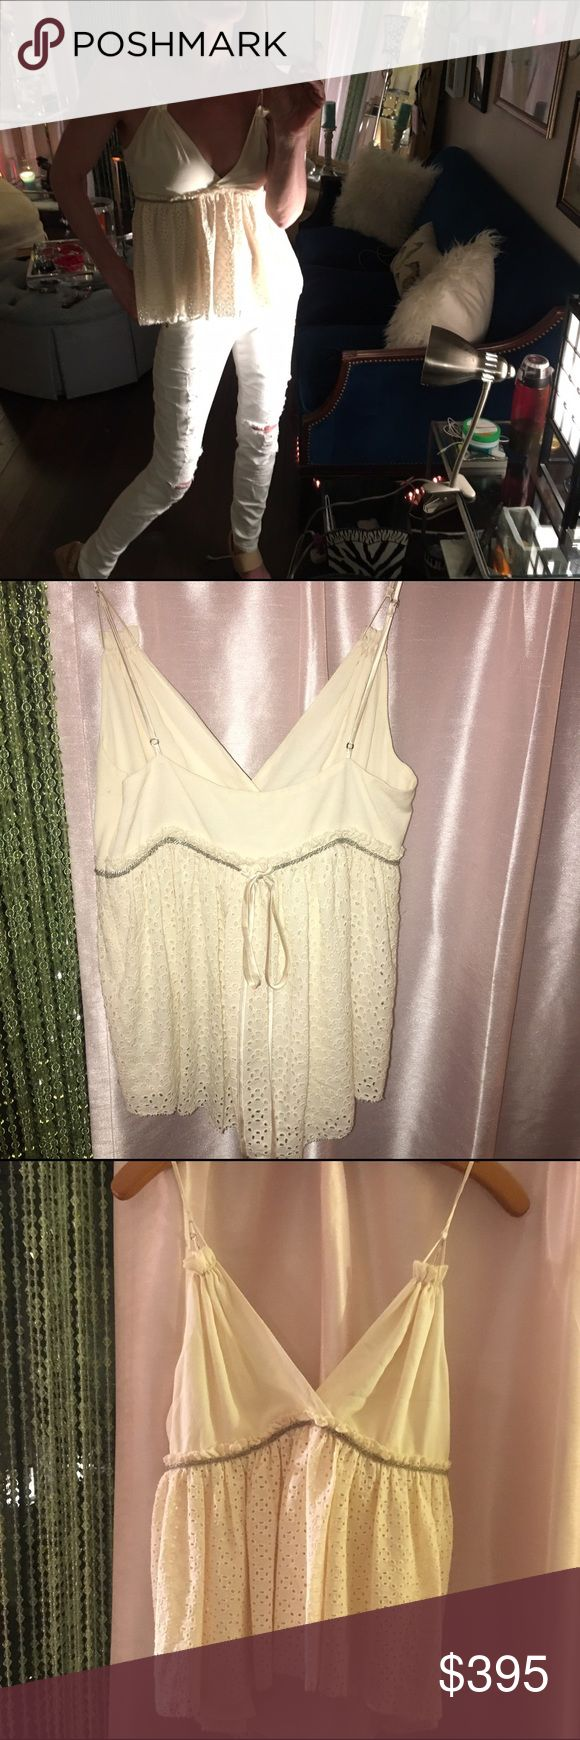 3.1 Phillip Lim silk baby doll top World renowned designer Phillip Lim silk beautiful baby doll top. This very special piece is a classic style you will not regret buying. Cream  ilette over lay, completely lined with silk. Excellent condition 3.1 Phillip Lim Tops